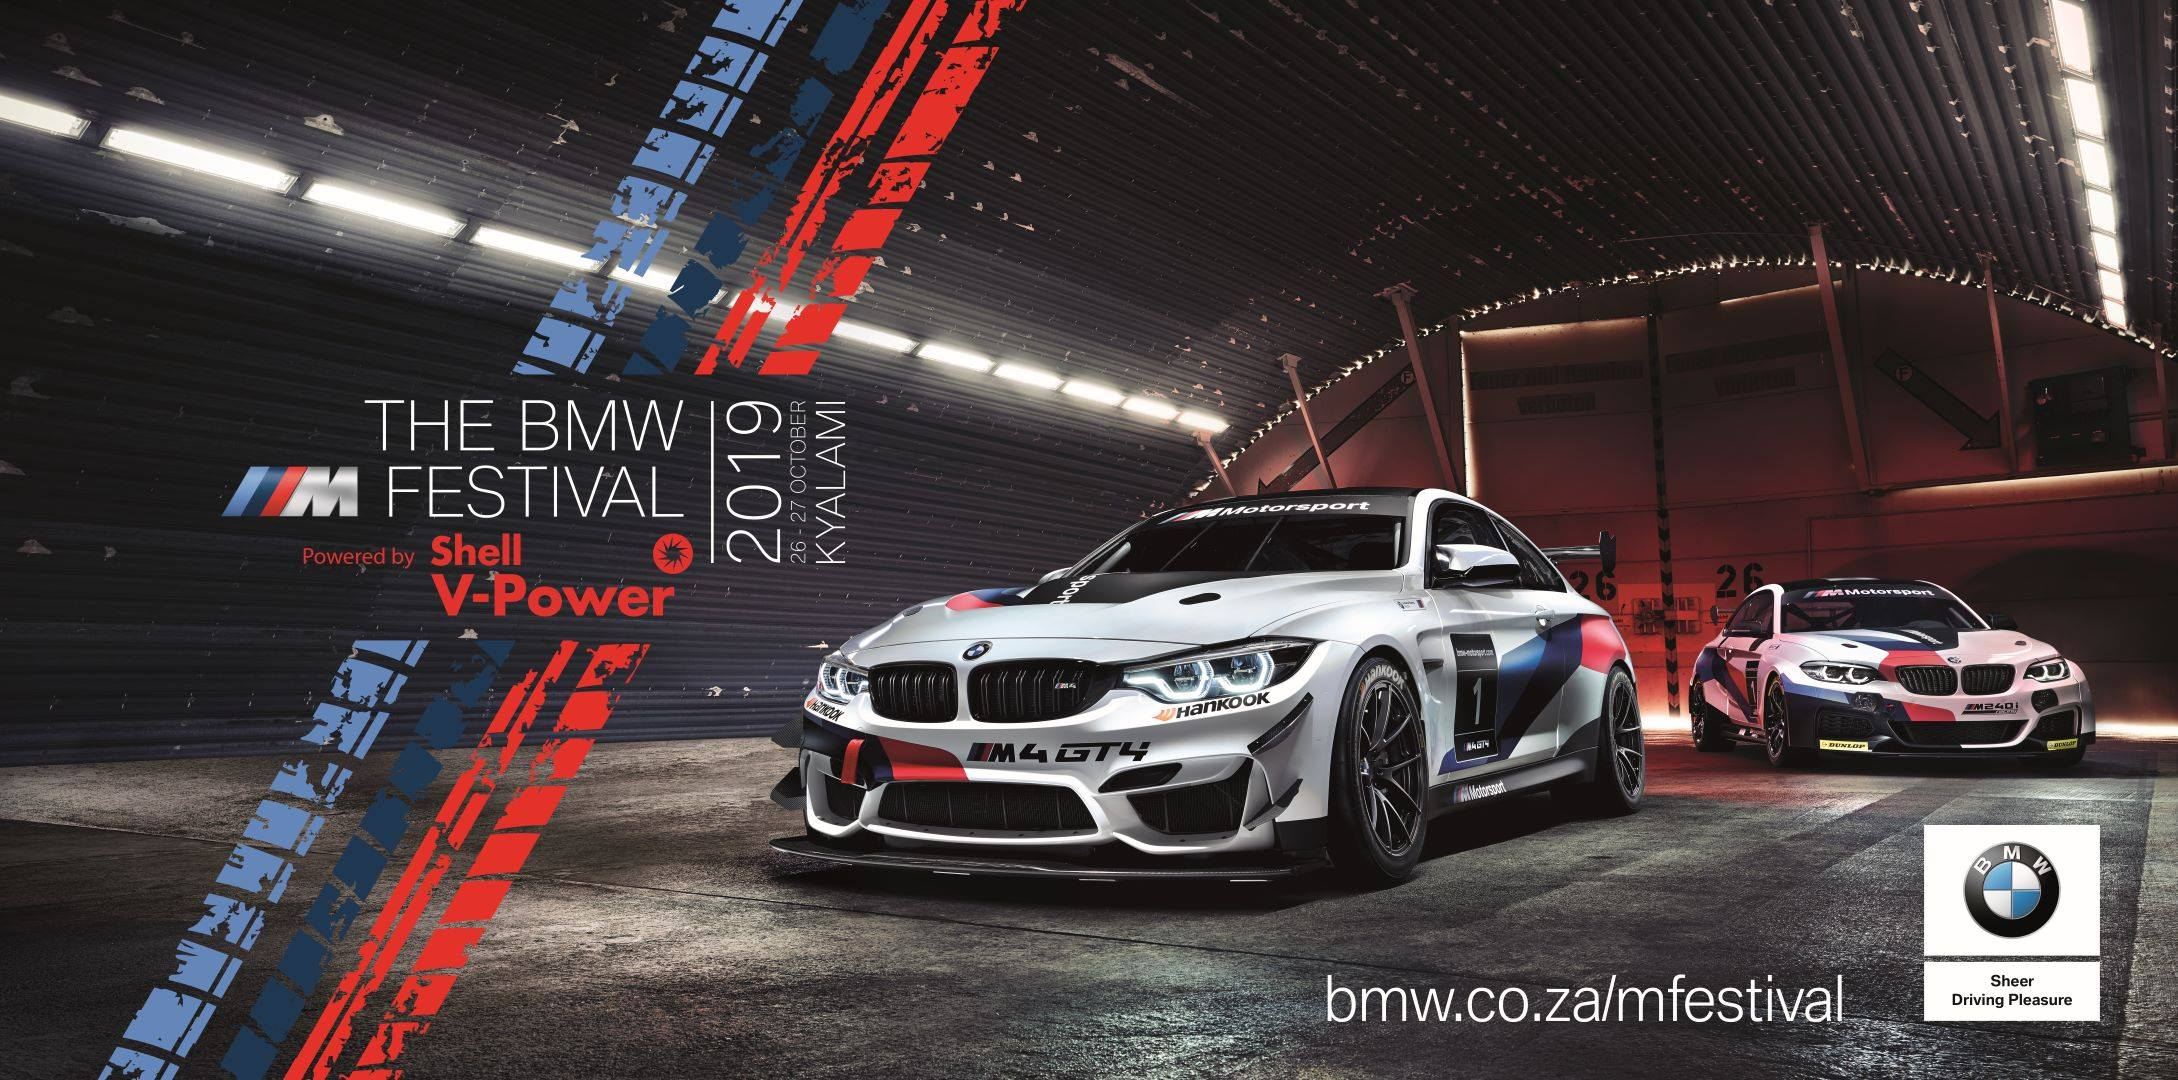 The BMW M Festival